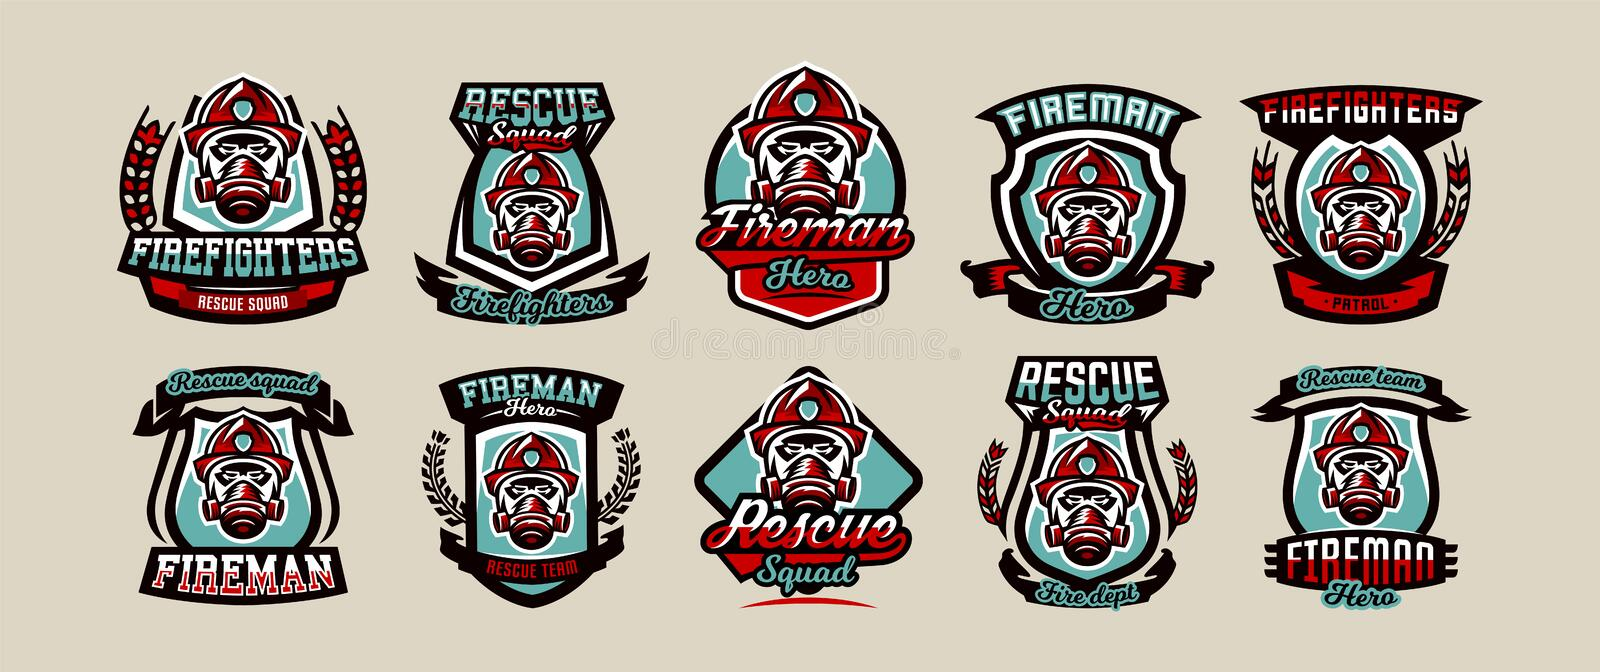 Set of colorful emblems, icons, logos, fire department, firefighter, helmet and mask, vector illustration. Set of colorful emblems, icons, logos, fire royalty free illustration